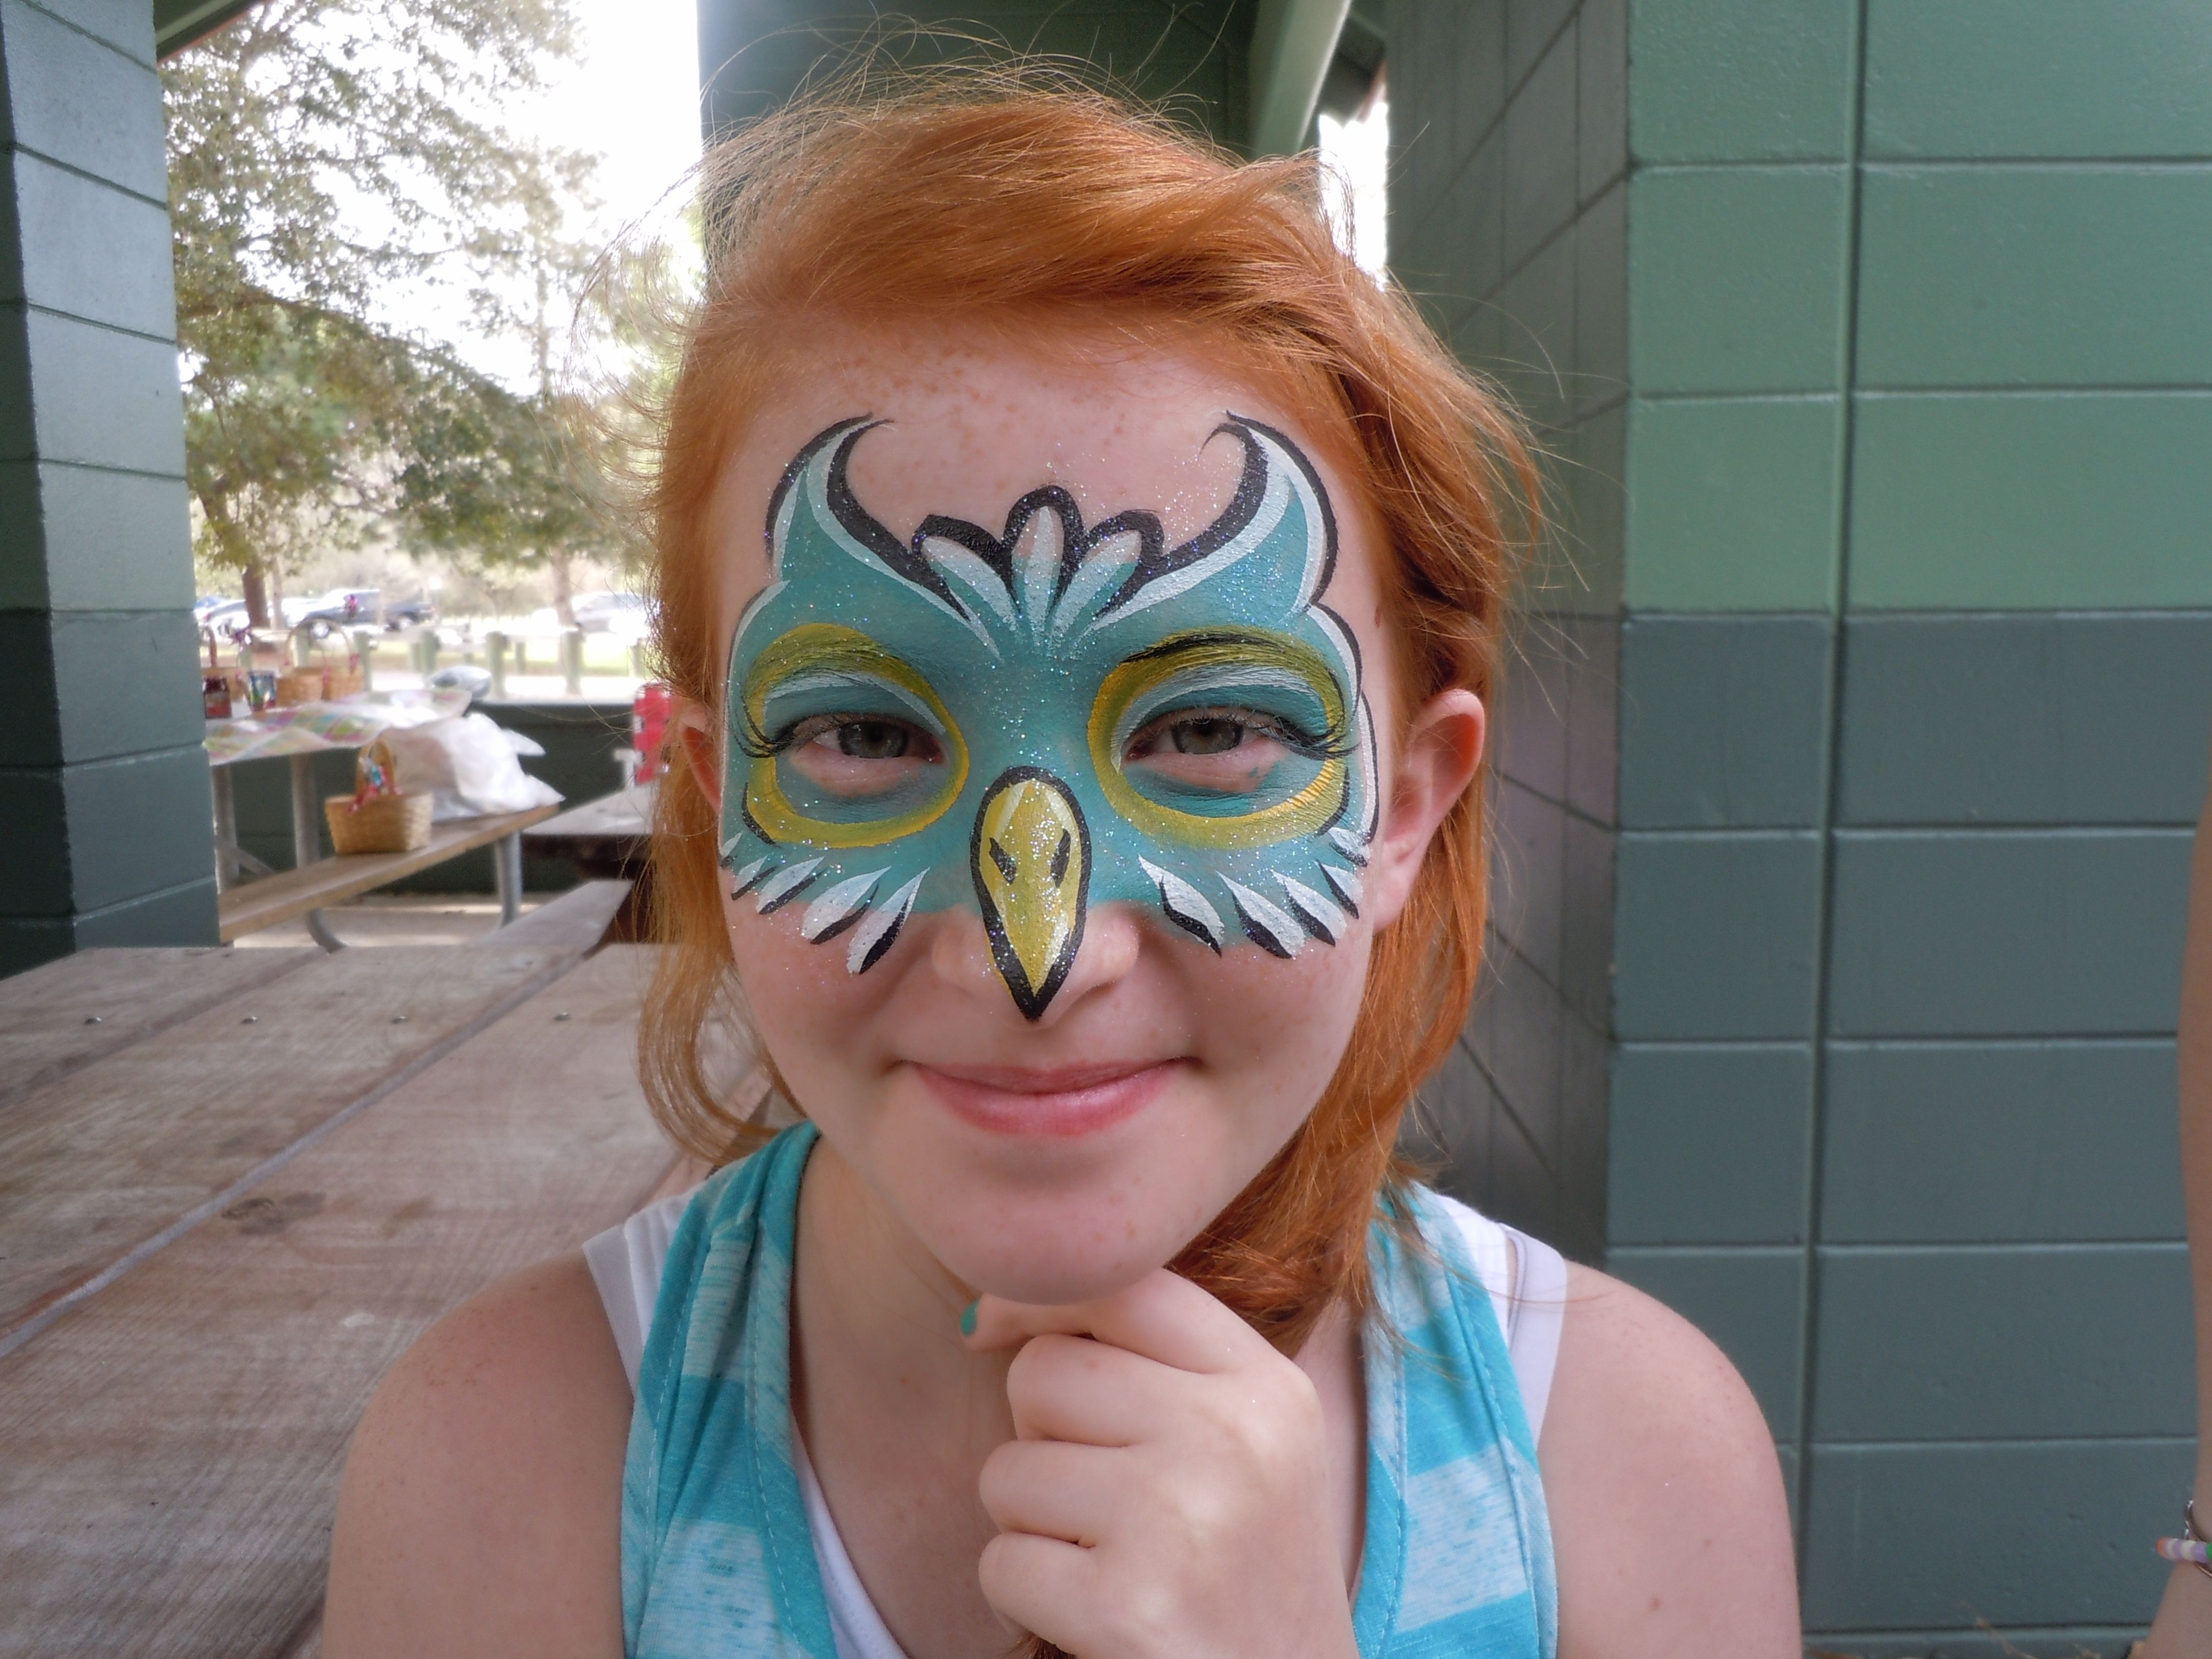 Funny face painting for kids creative art and craft ideas - Fox Face Paint